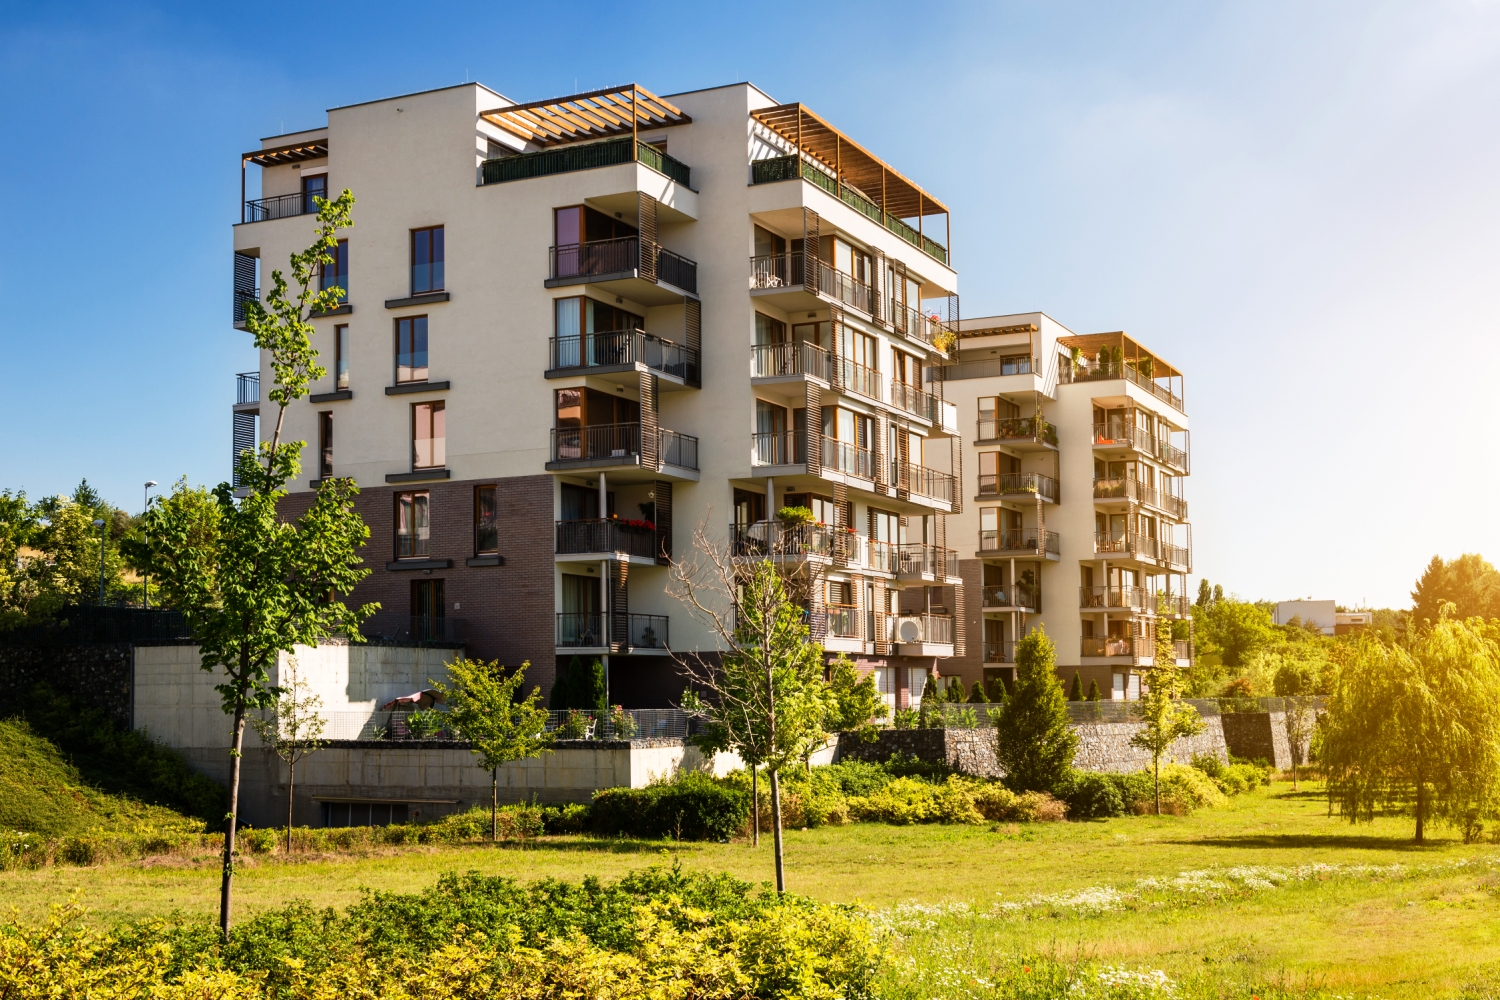 1 And 2 Bedroom Kelowna Condos For Sale By Remax Quincy Vrecko